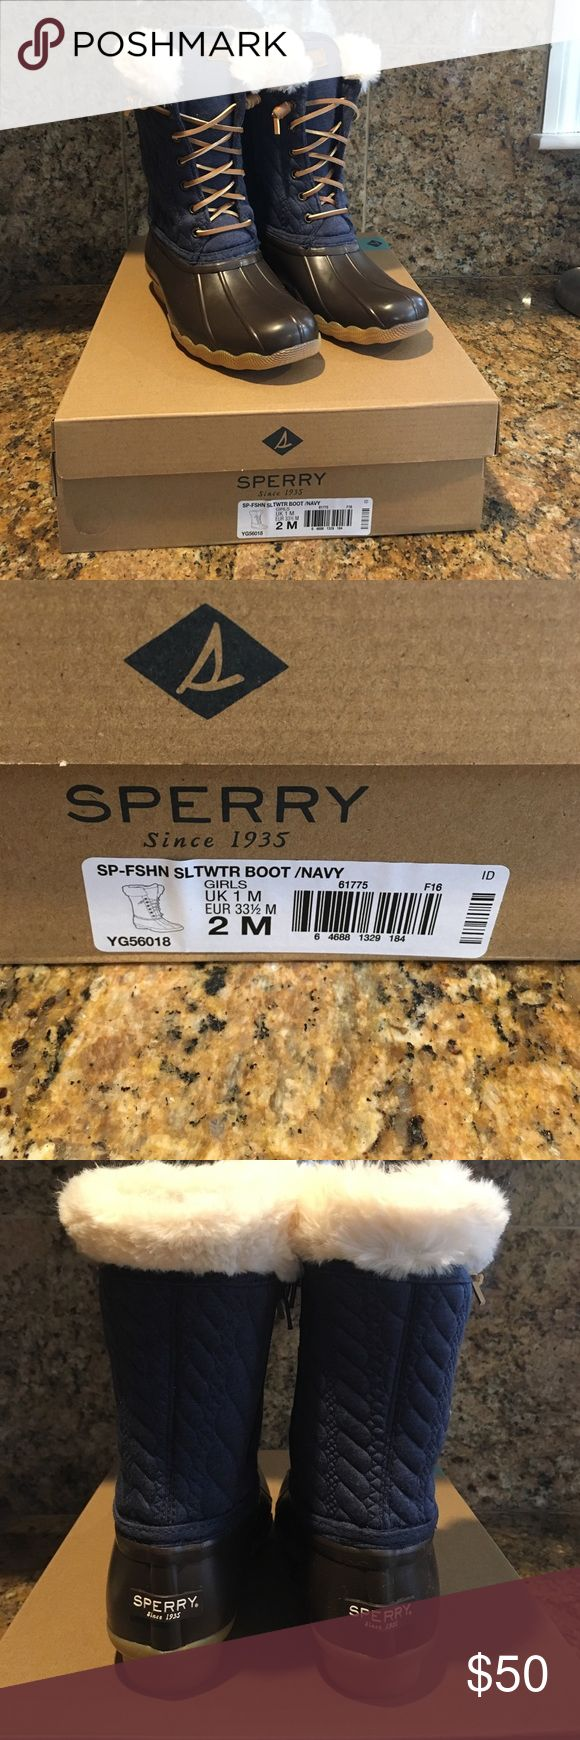 New girls Sperry boots size 2 Brand new, in original box, girls size 2 saltwater boots Navy/brown. Bought as a Christmas gift, were too small and I was unable to return after 45 days. Sperry Shoes Boots